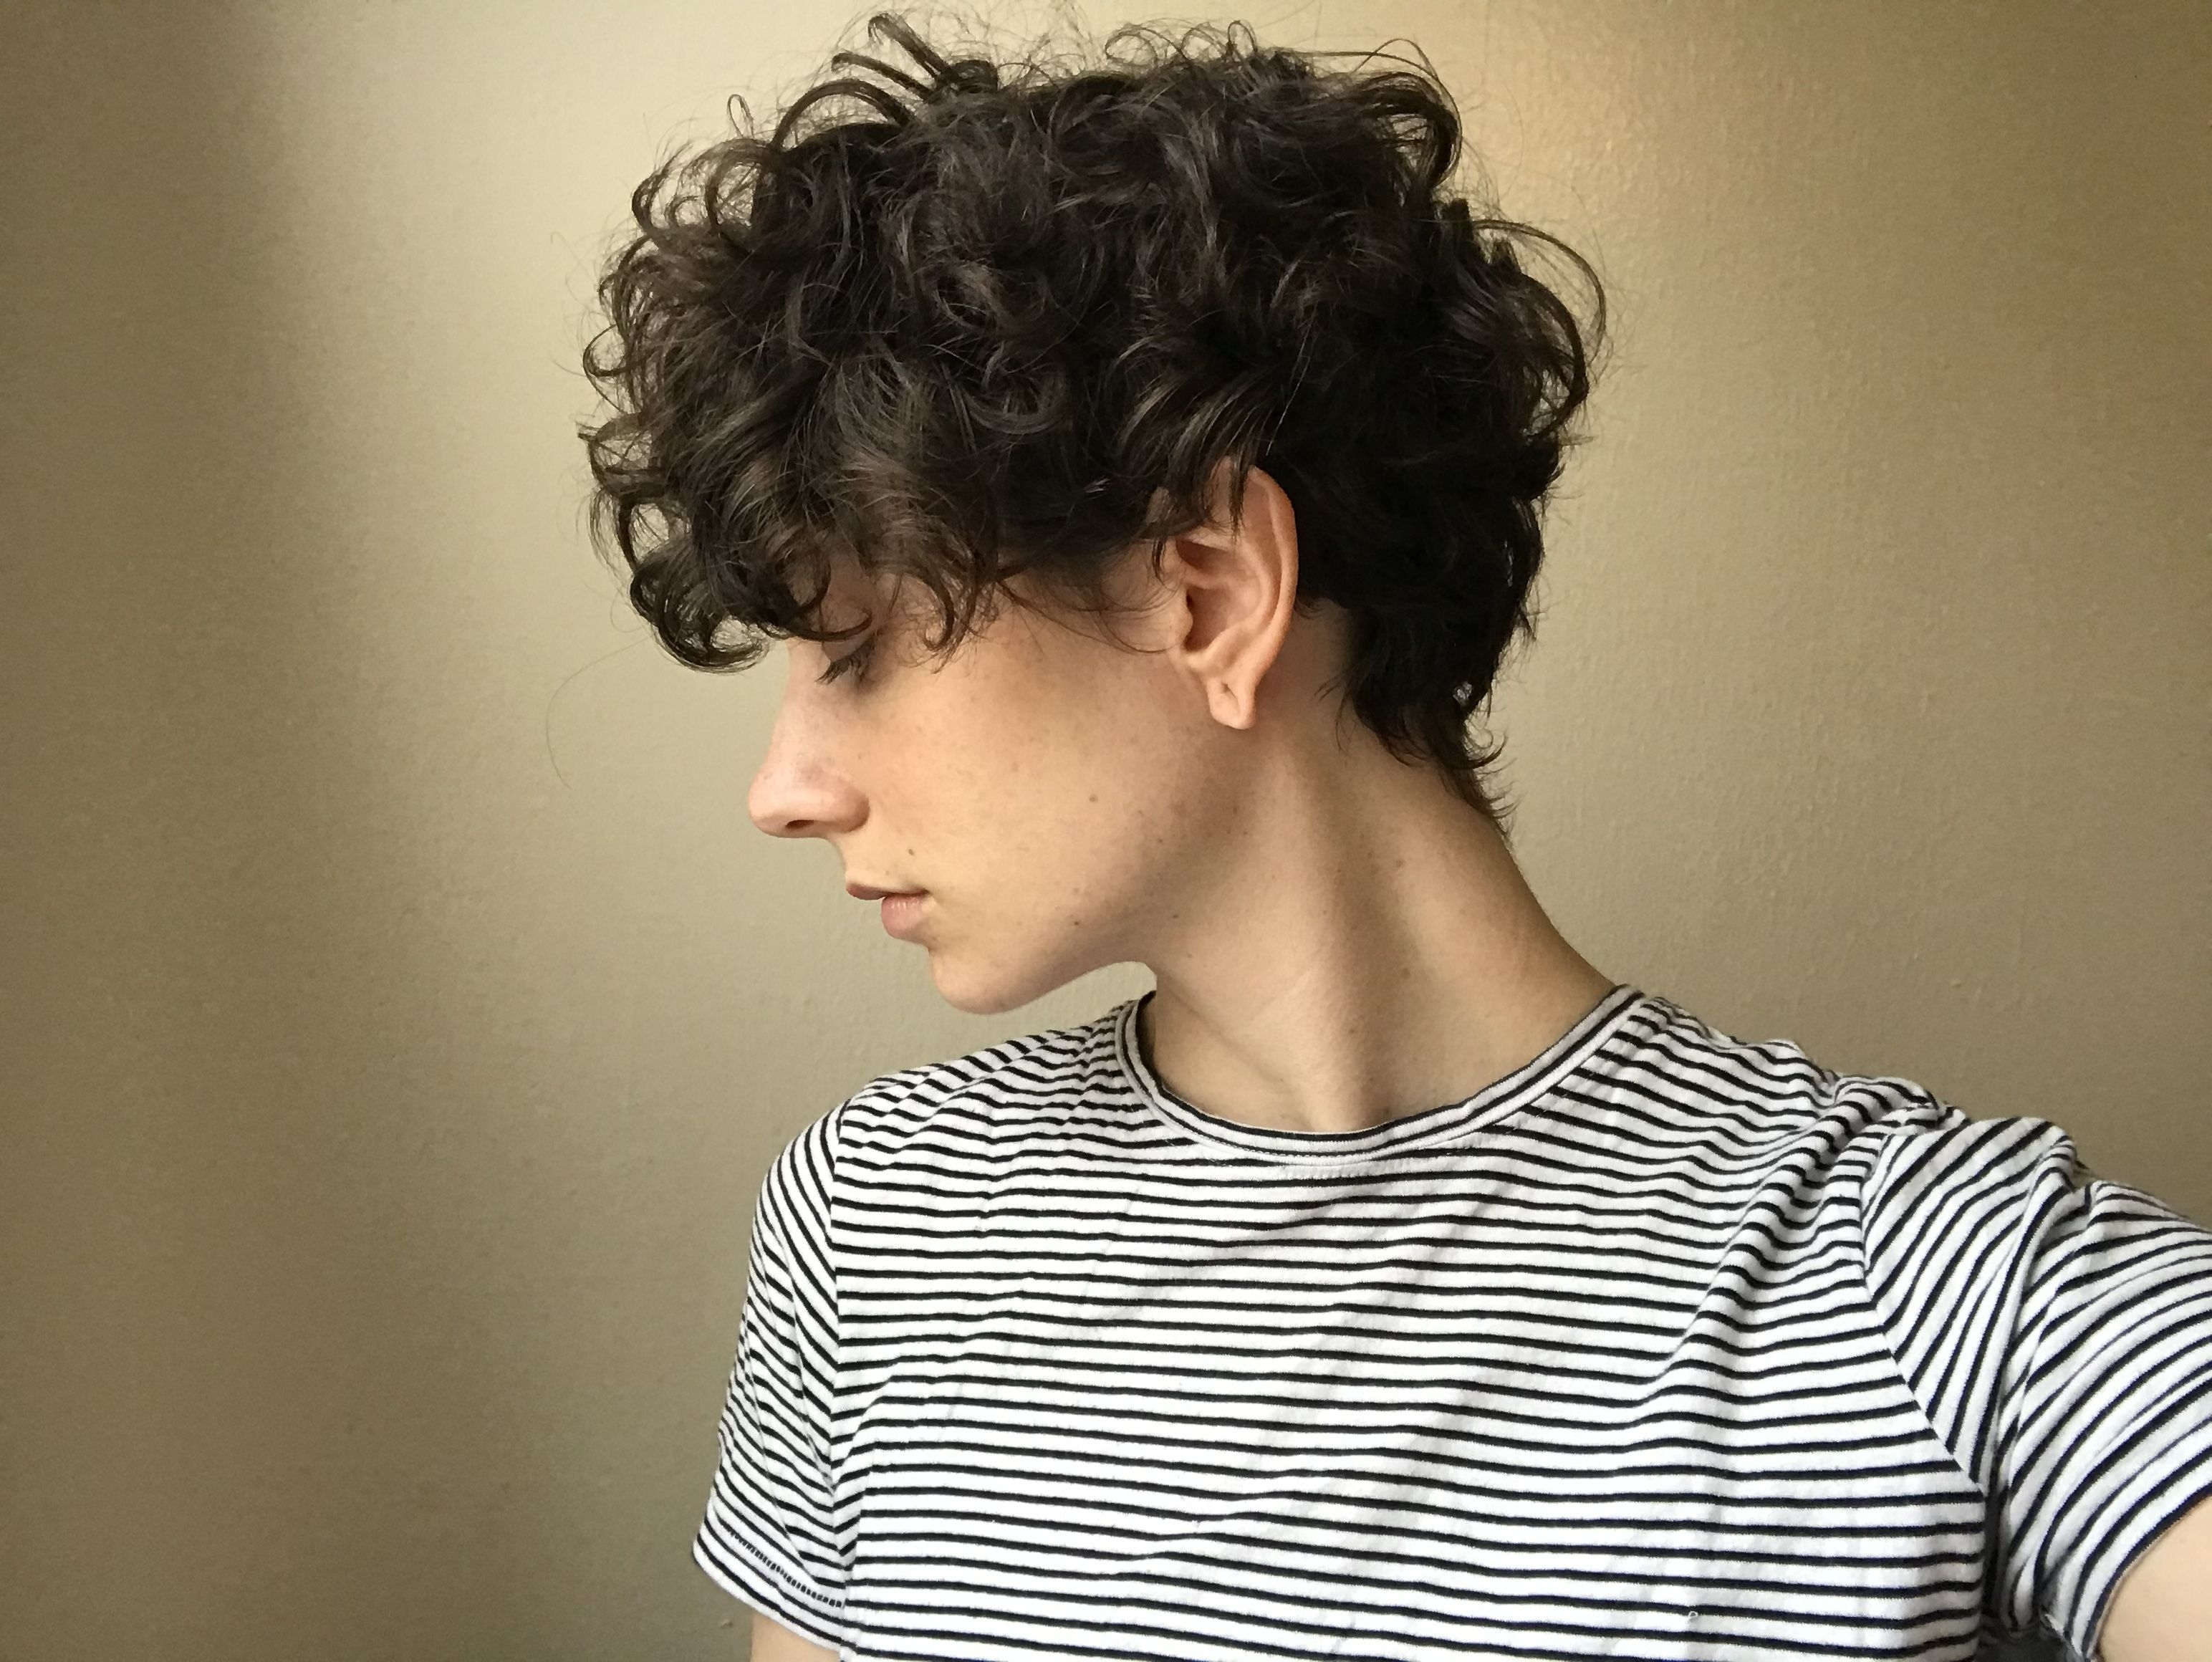 Growing Out Short Curly Hair | Boys | Pinterest | Short Curly Hair With Regard To Most Recently Growing Out Pixie Haircuts For Curly Hair (Gallery 4 of 15)